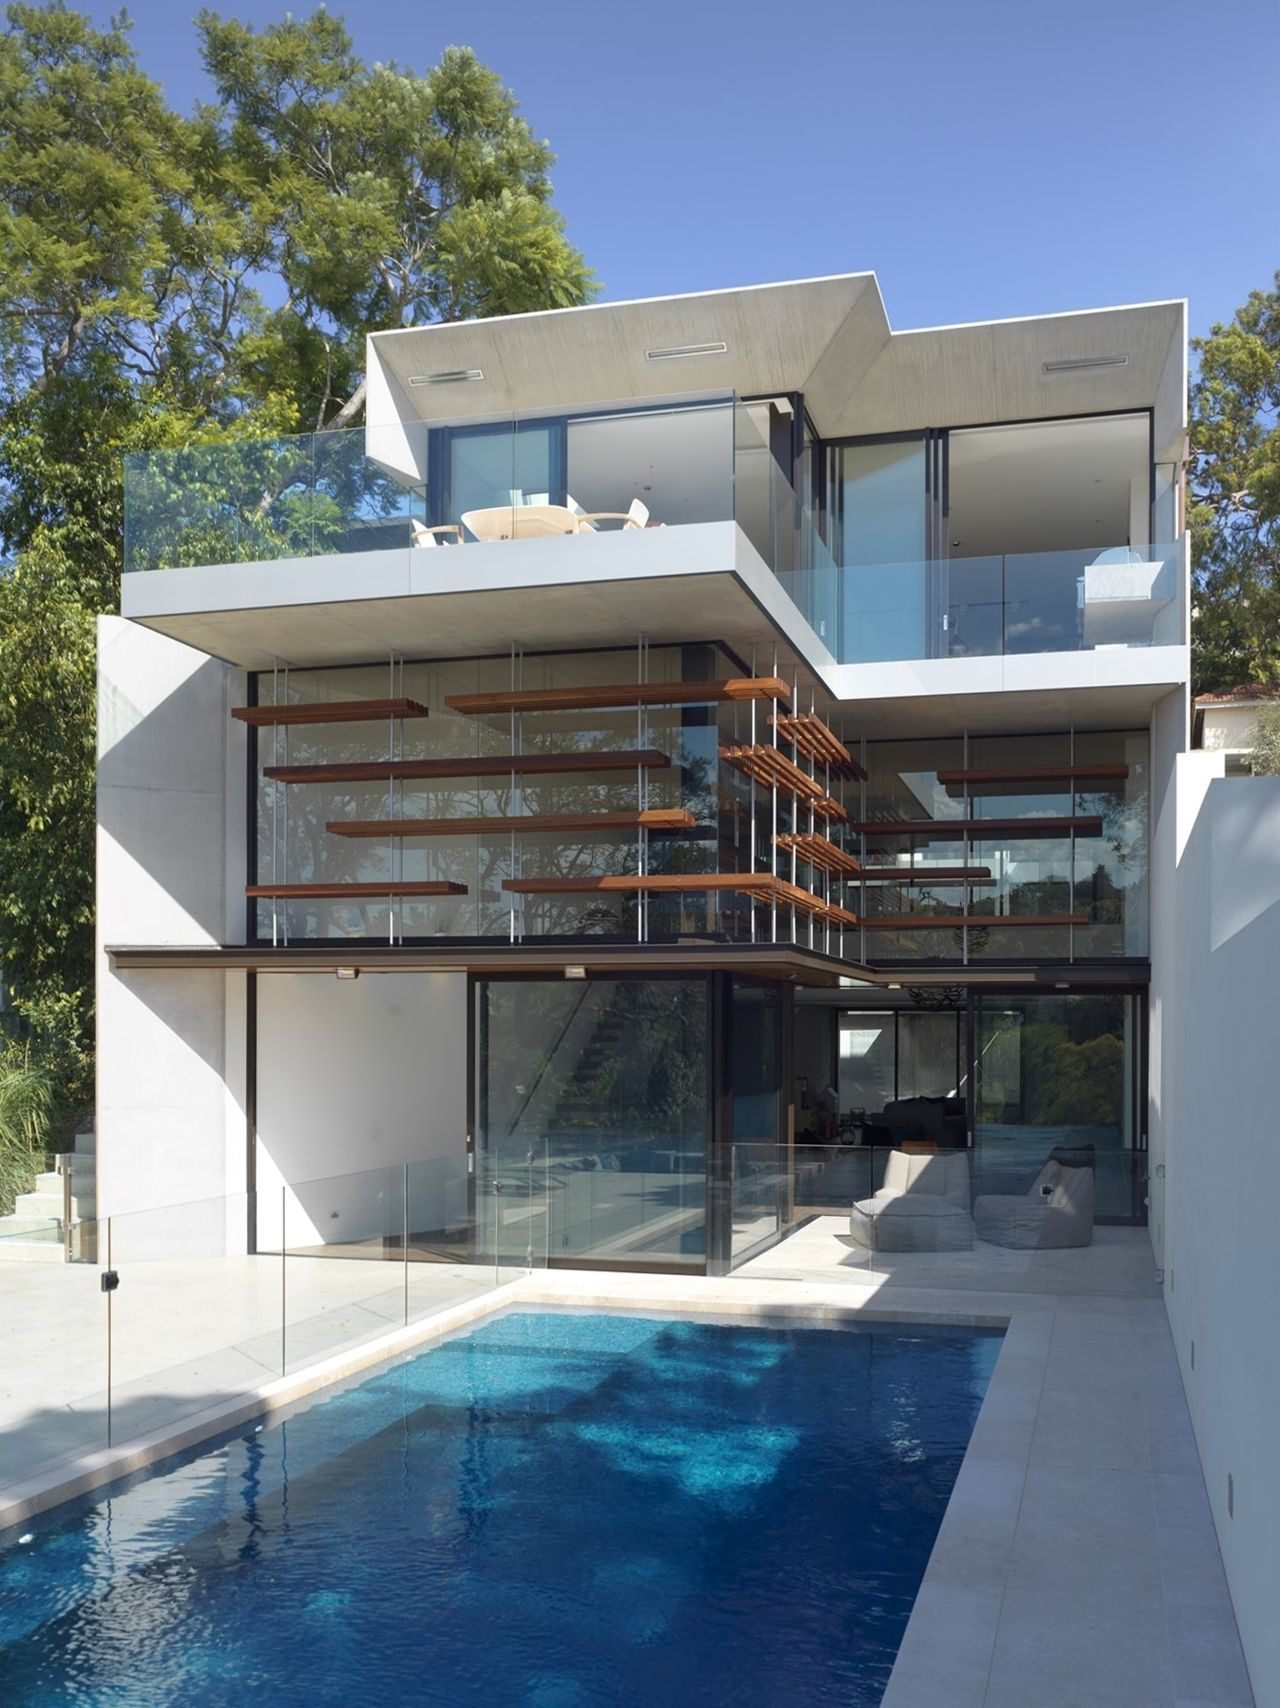 Tiny Swimming Pool Ideas That S 21 Very Stunning Swimming Pool Design Just How Do You T Modern House Plans Sustainable House Design House Built Into Hillside